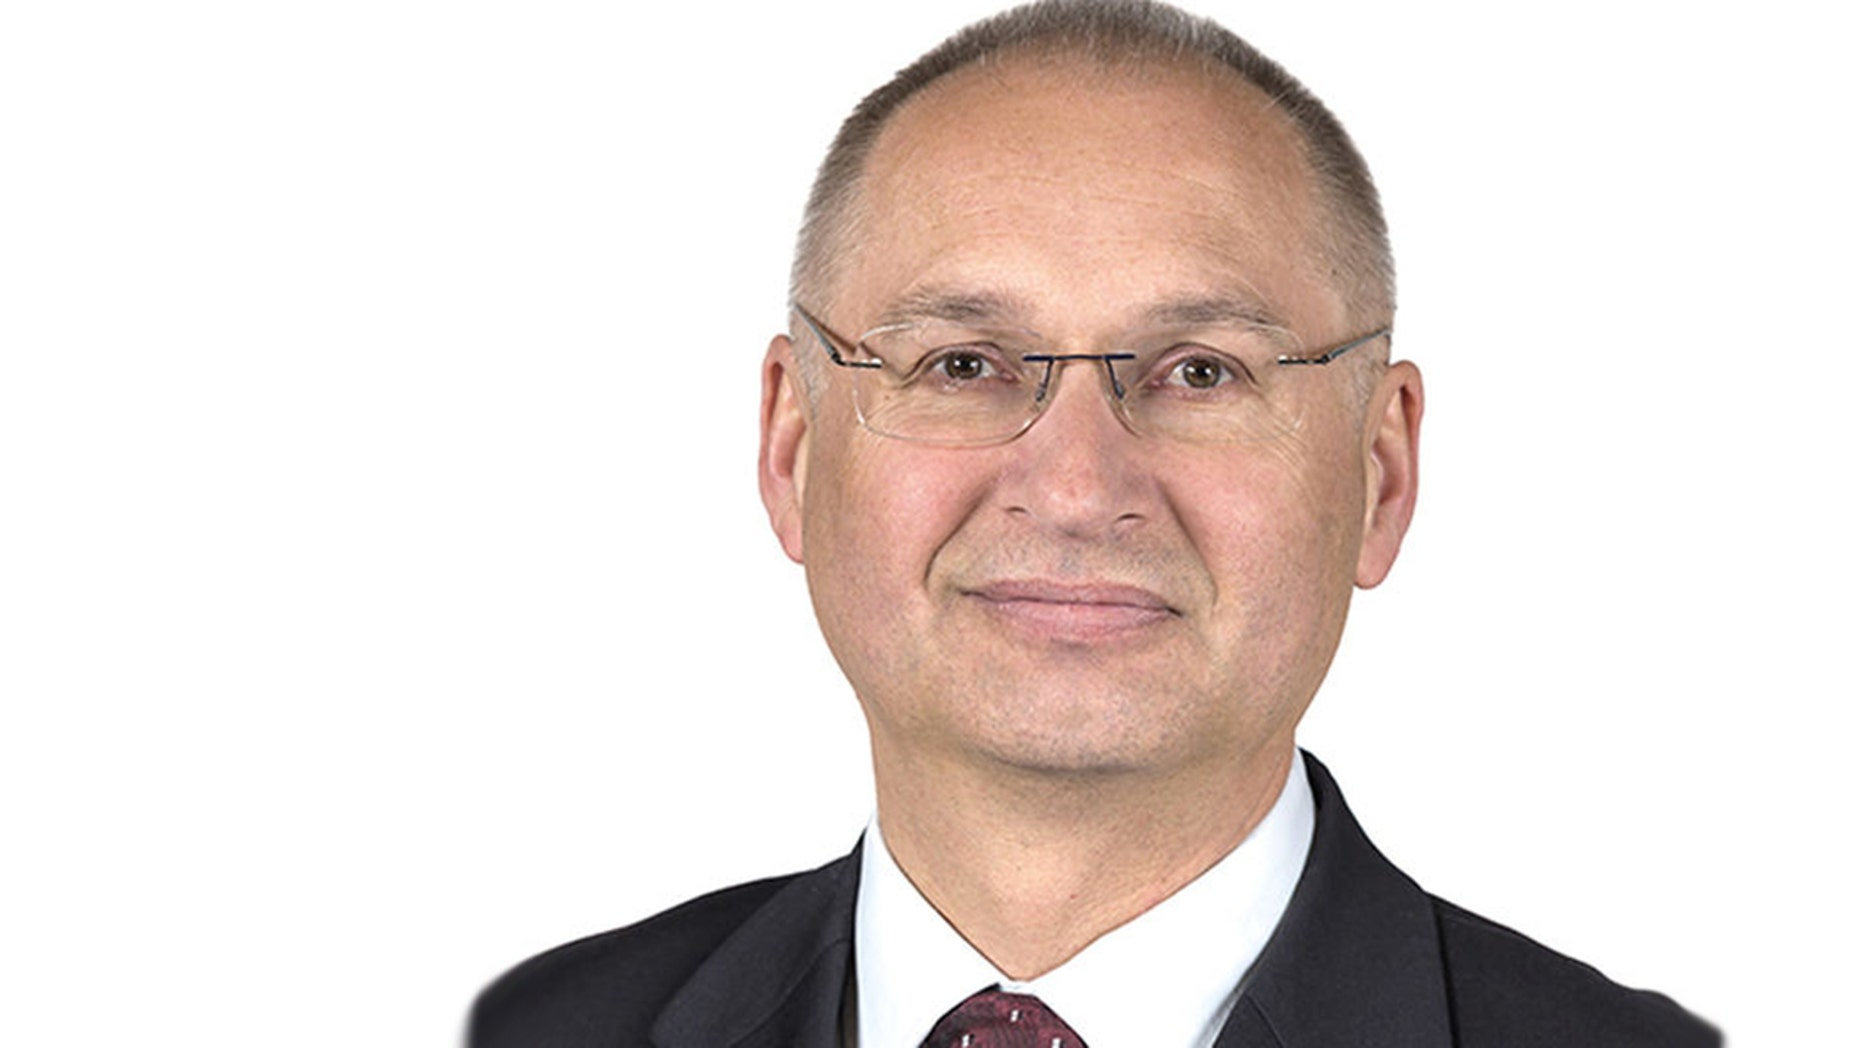 Darij Krajcic has stepped down from being a member of the Slovenian parliament after he stole a sandwich.